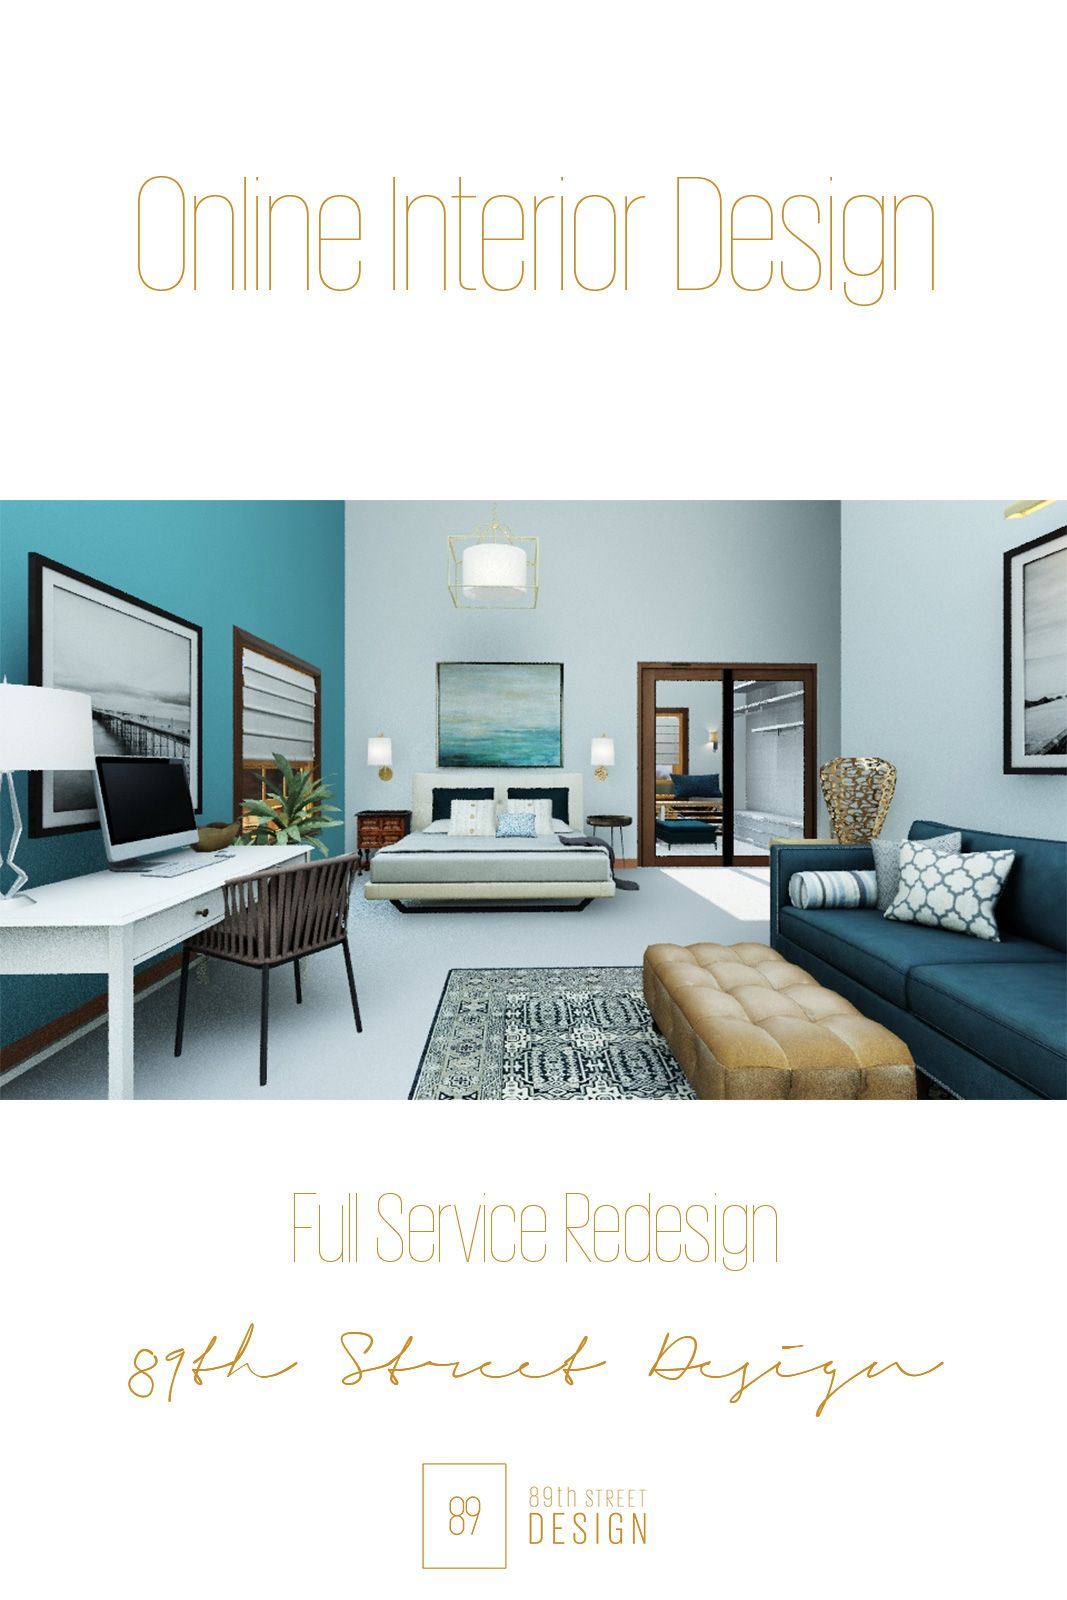 My 3d Room Design: Ready To Redesign Your Space? Let's Do This! This Is The